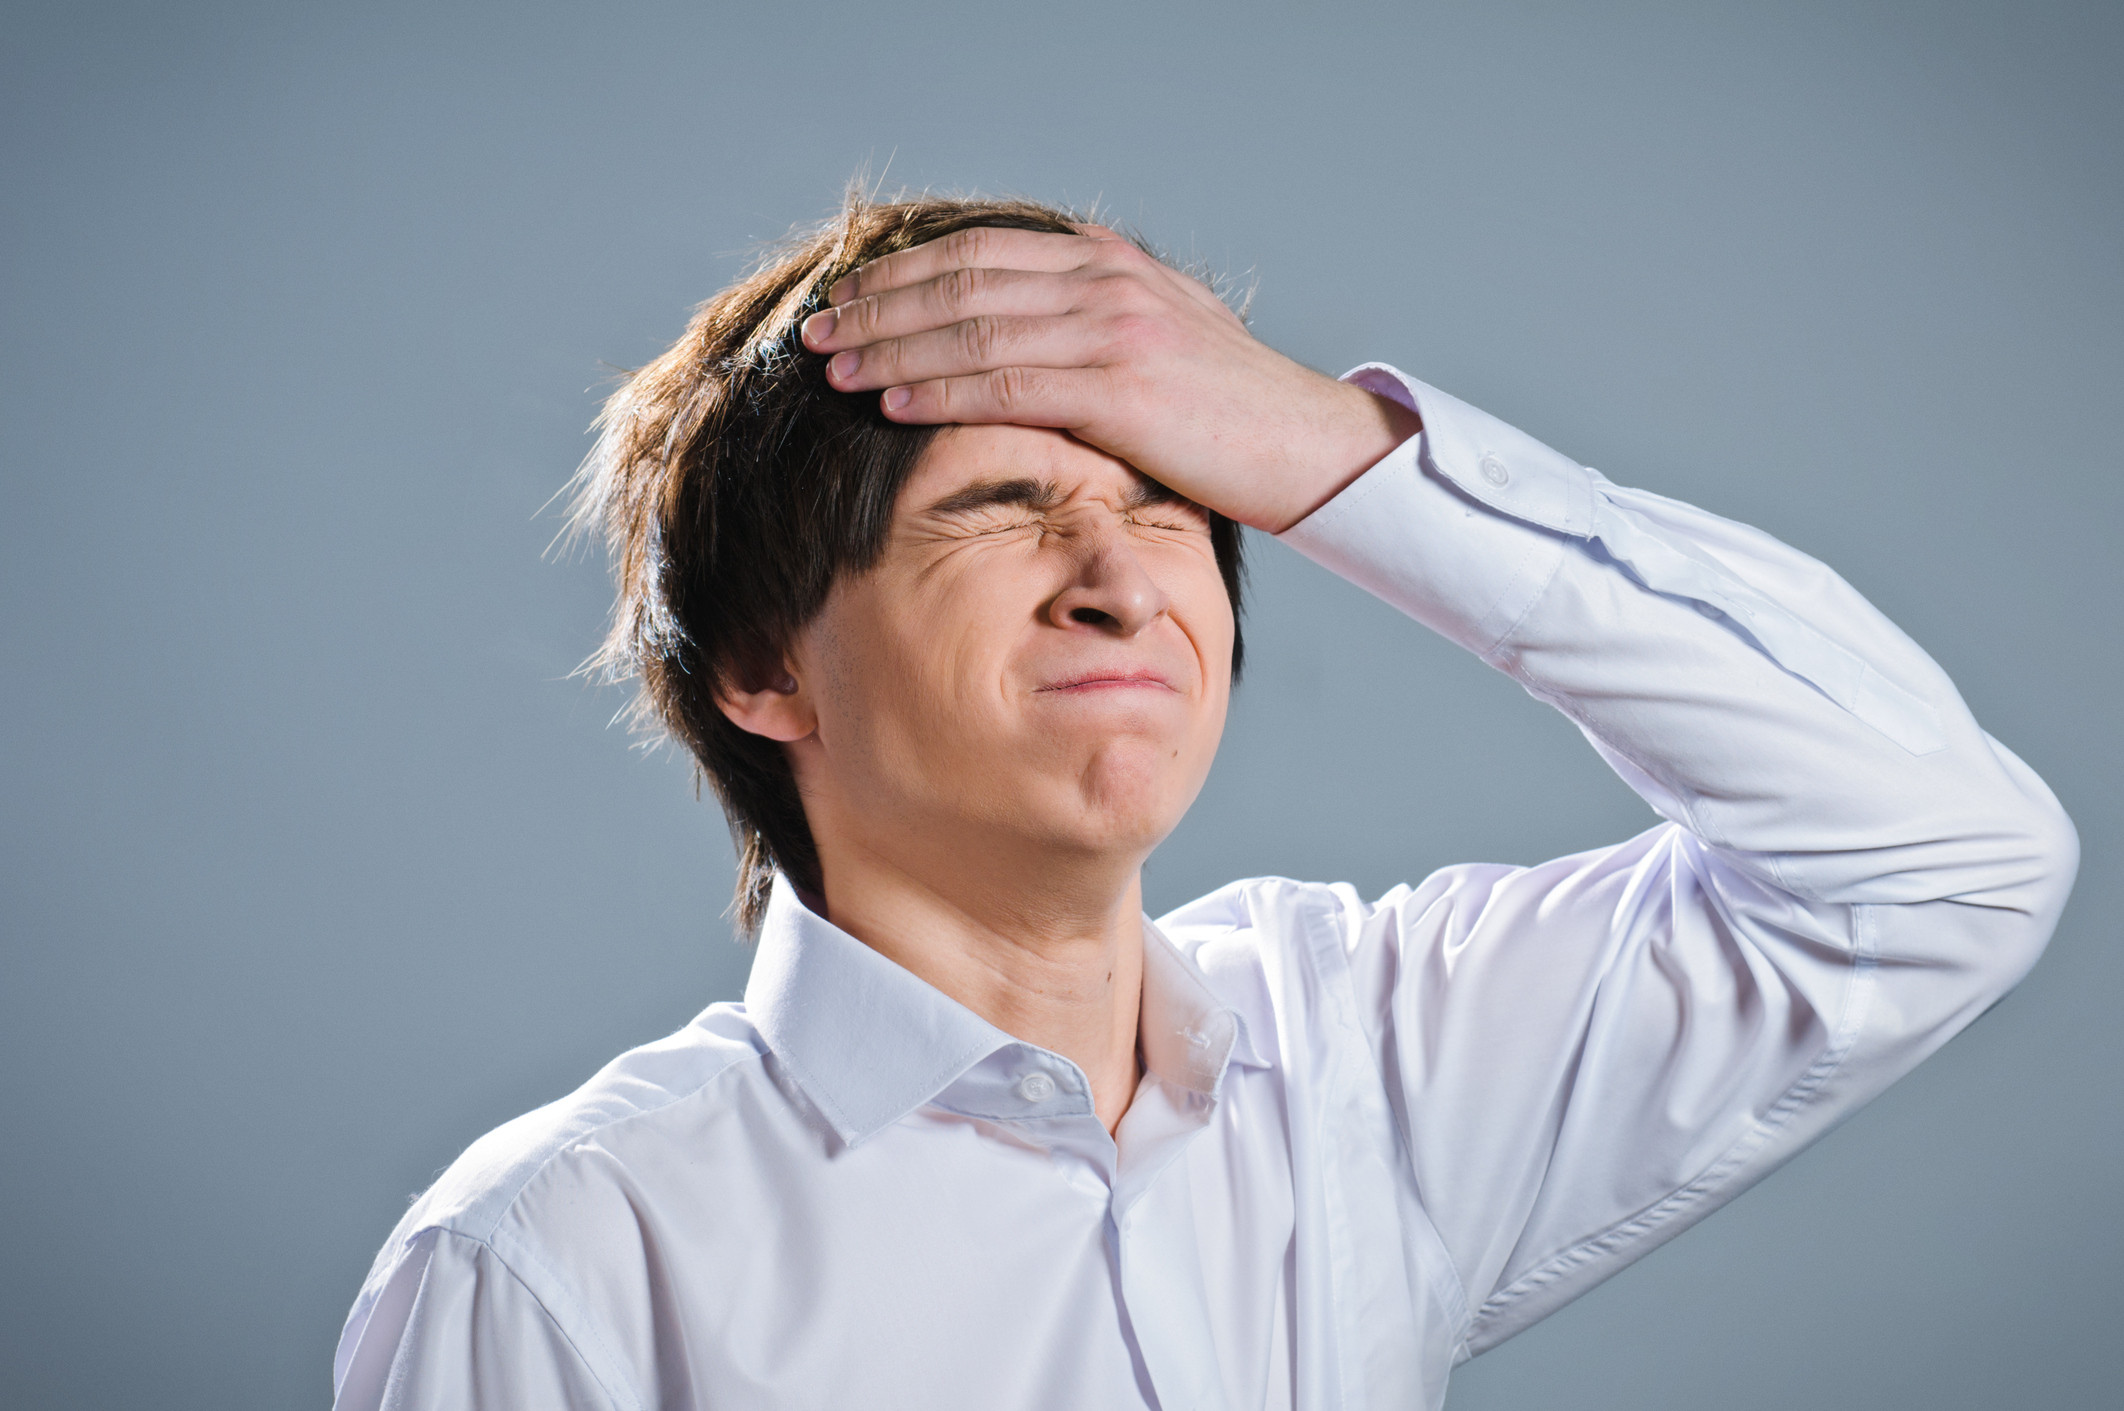 7 common causes of forgetfulness - Harvard Health